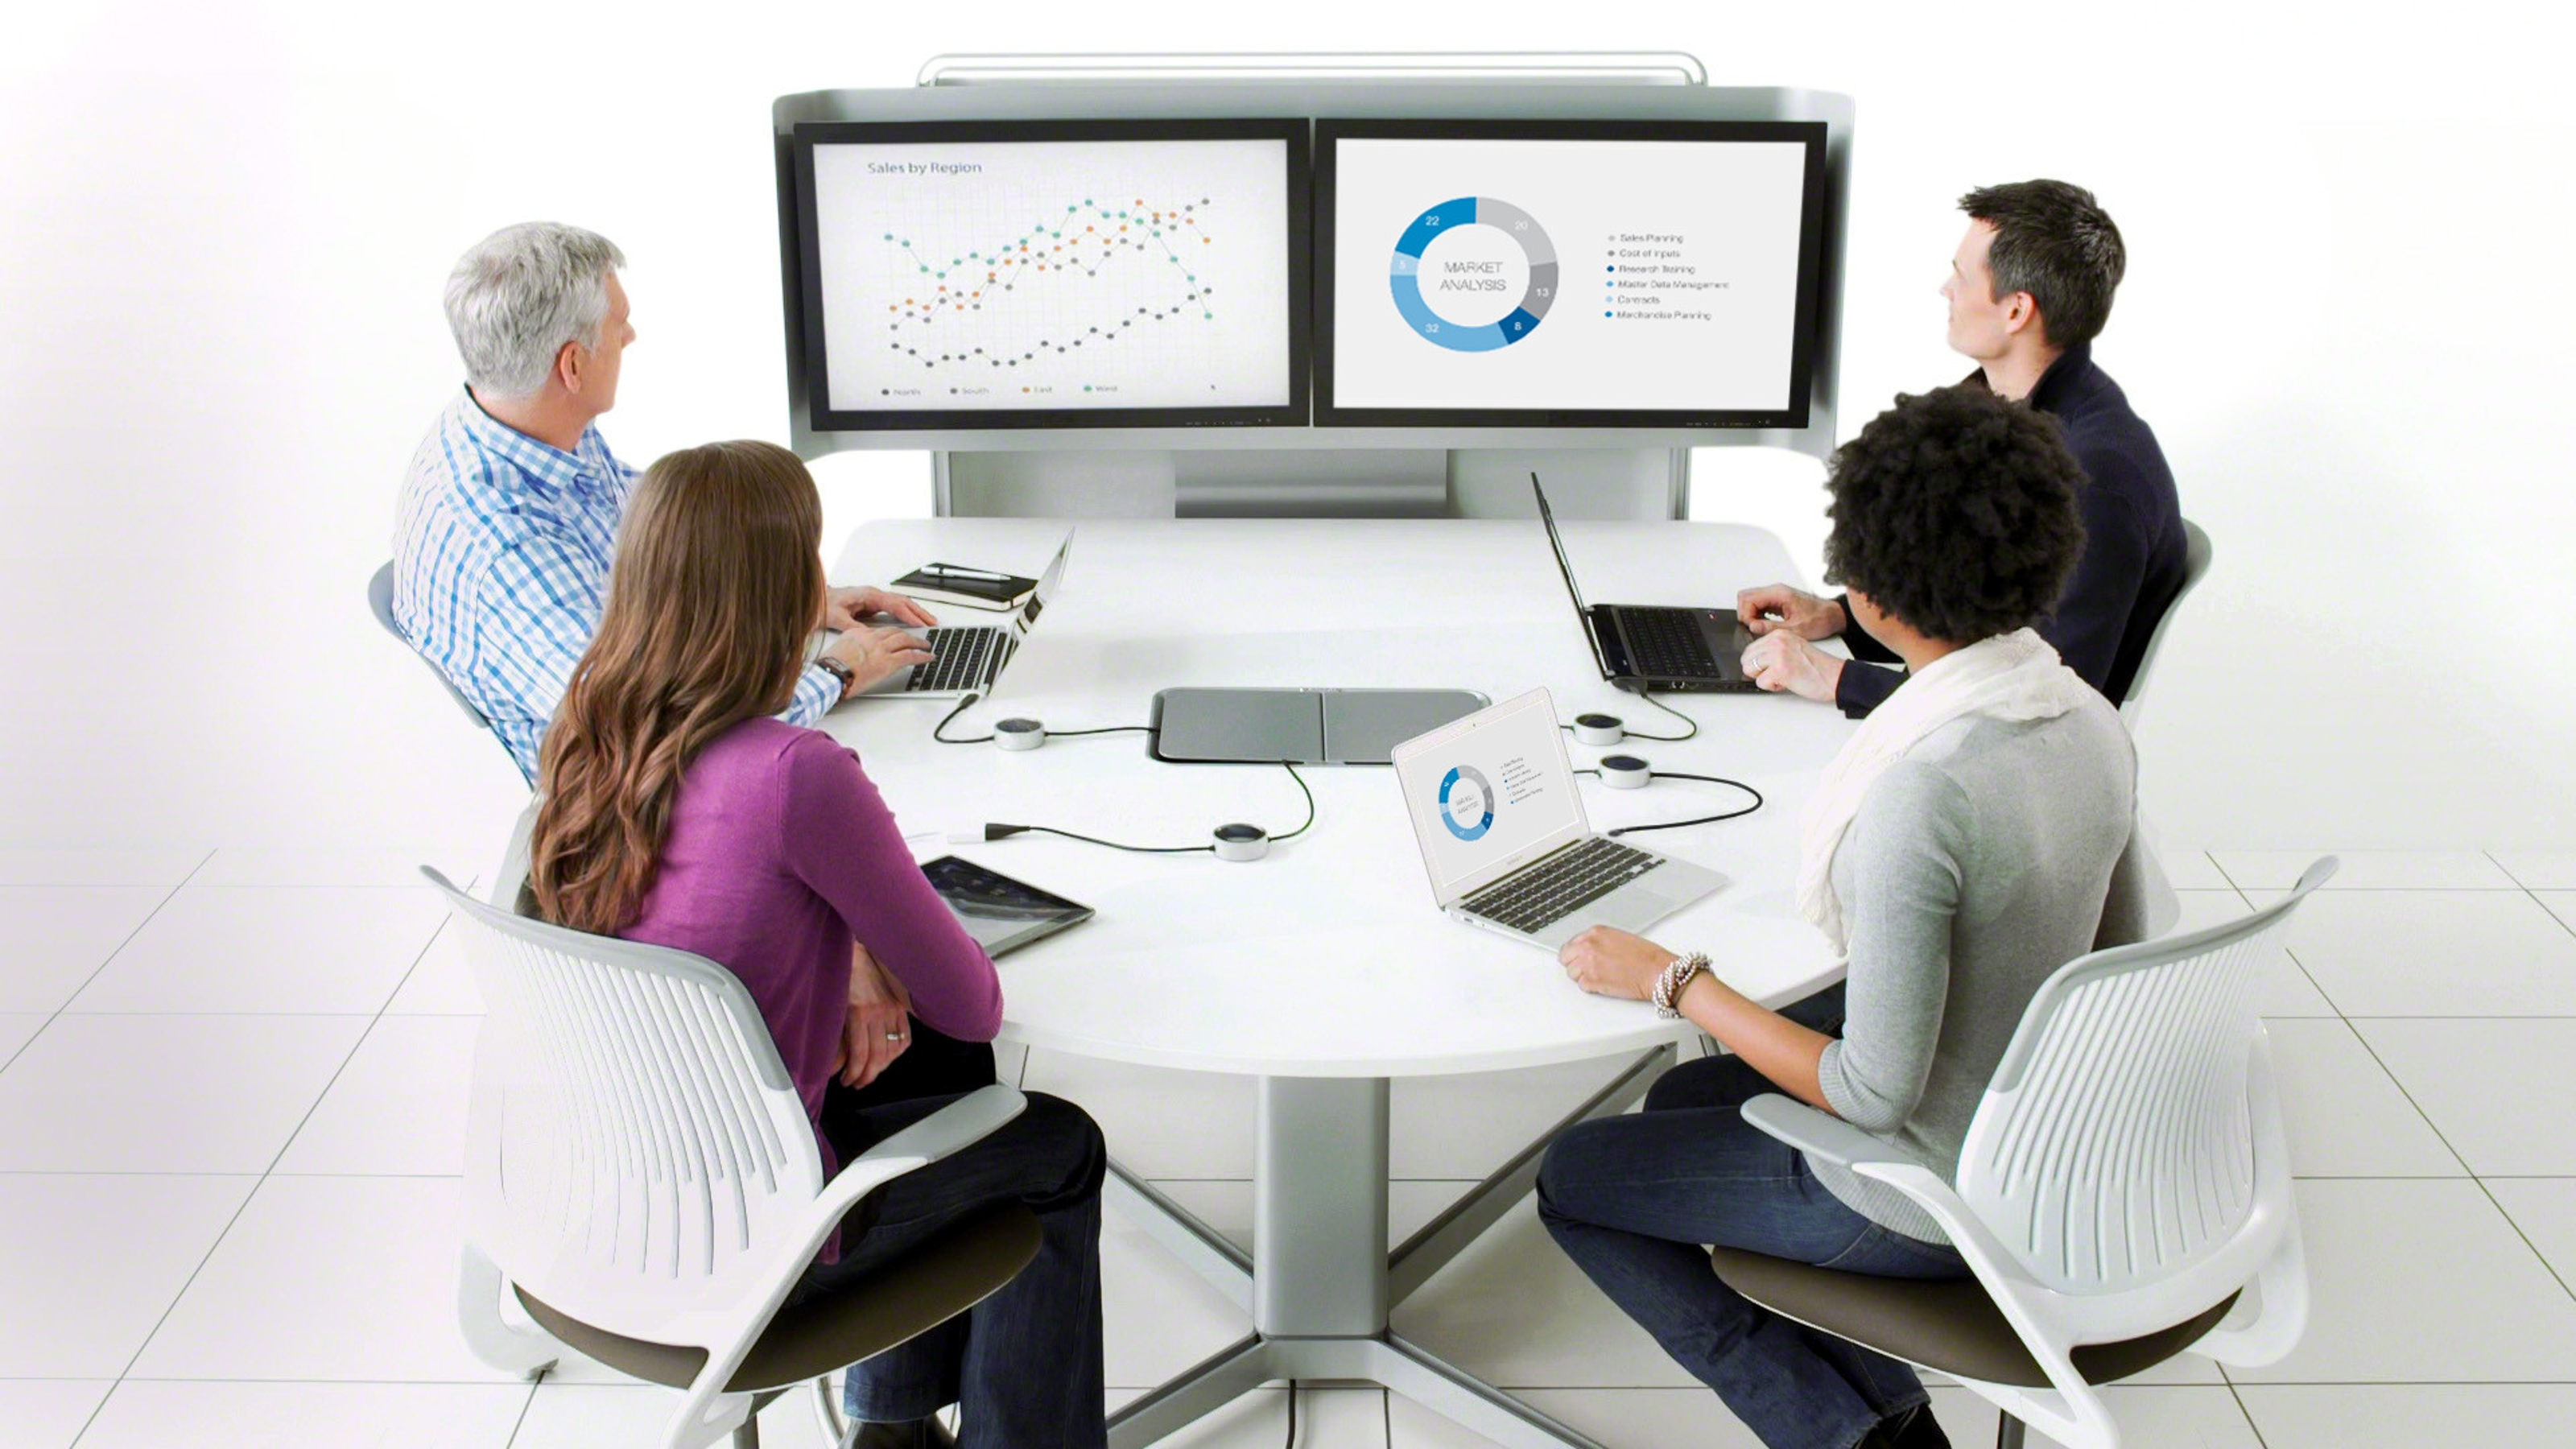 Collaborative Classroom Technology ~ Media scape meeting conference technology steelcase